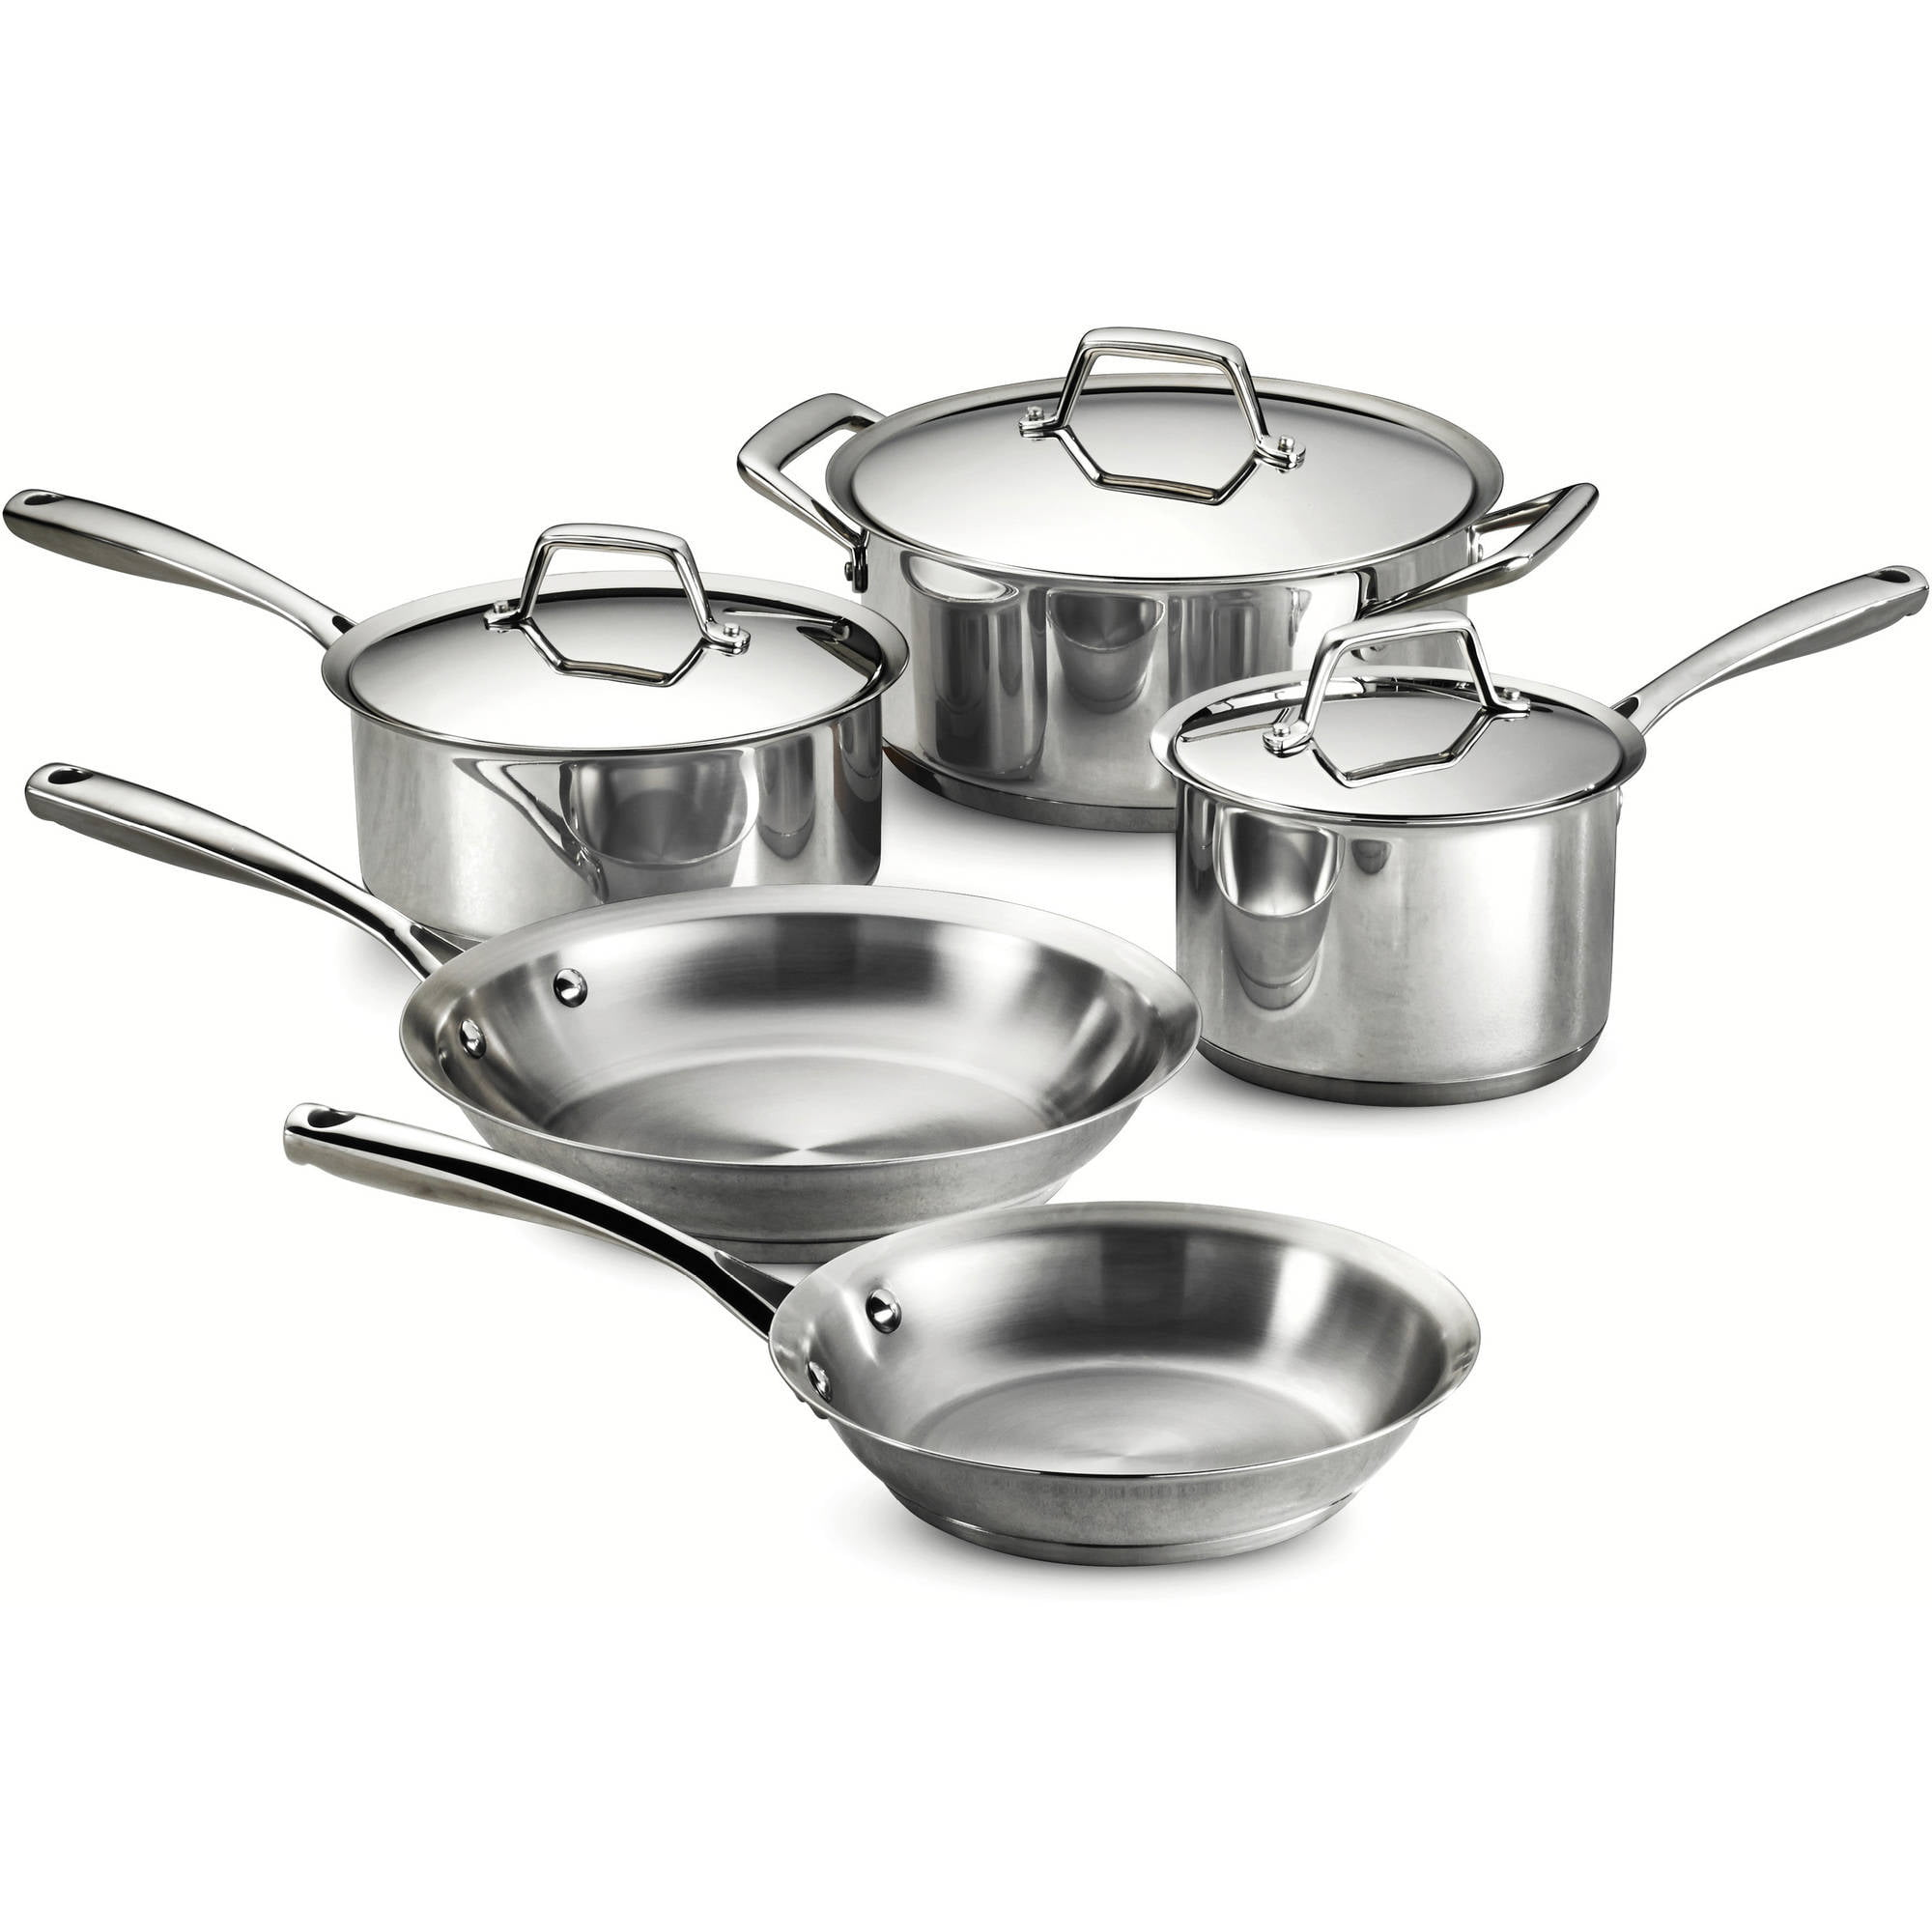 Tramontina Gourmet Prima 8-Piece Stainless Steel Cookware Set by Tramontina USA Inc.